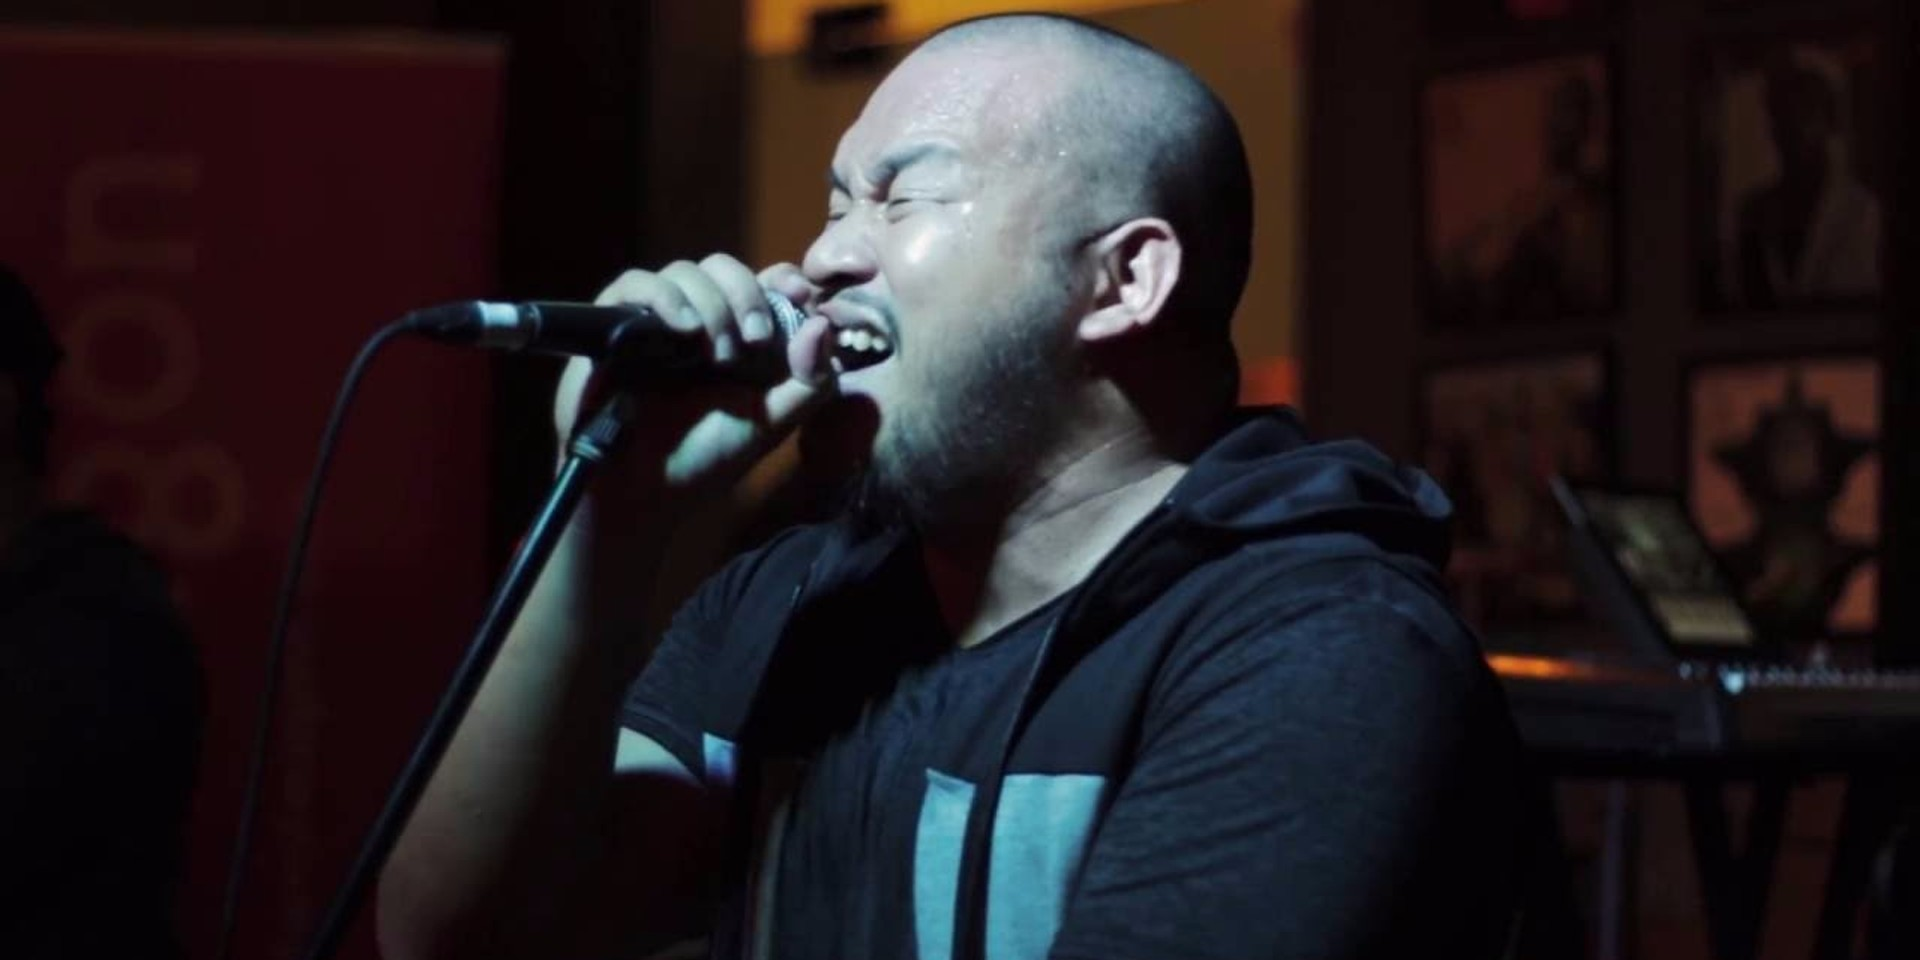 WATCH: Filipino rapper QUEST spits fire during his live performance at Barber Shop by Timbre